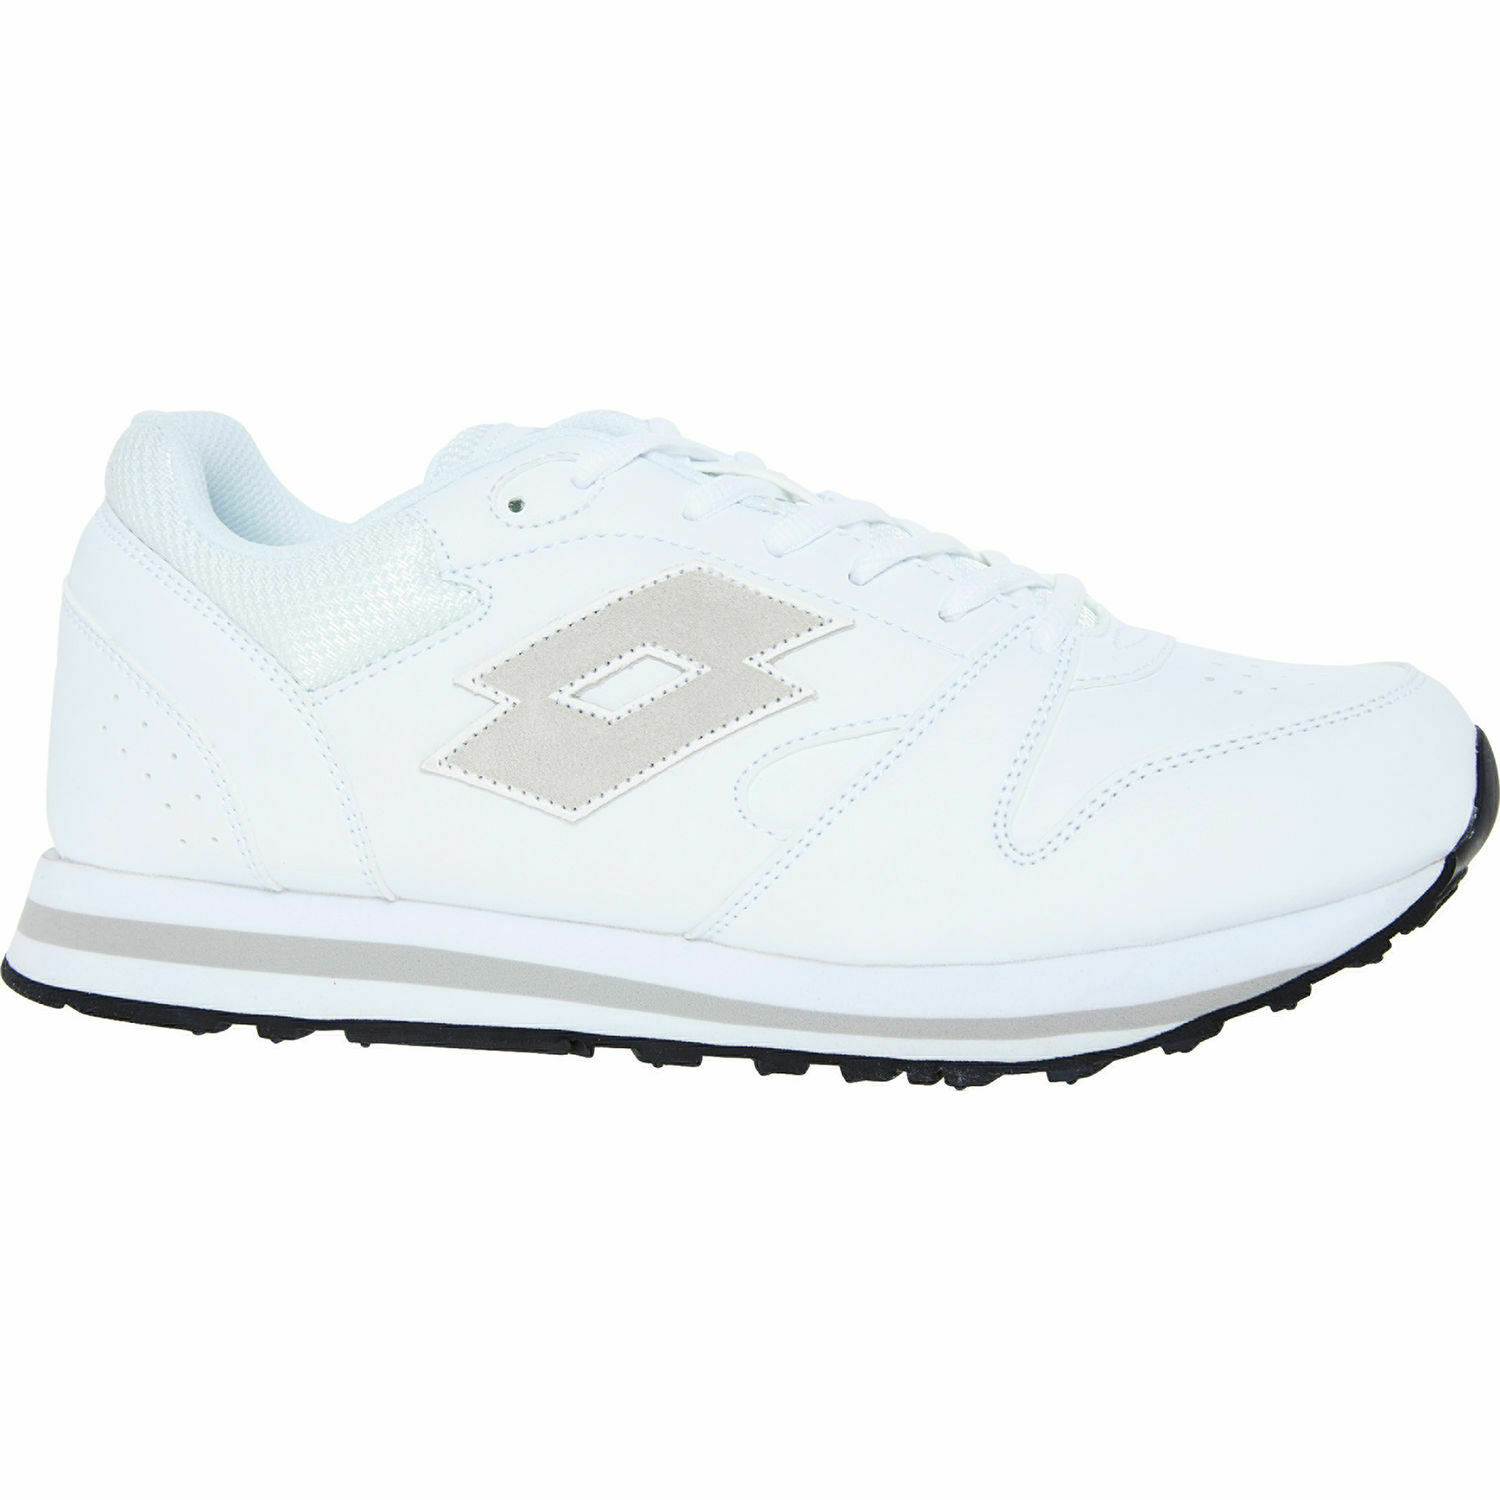 0b8a30be91ff Lotto Premium VIII LTH S4199 White Grey Sports Sneakers shoes Trainers